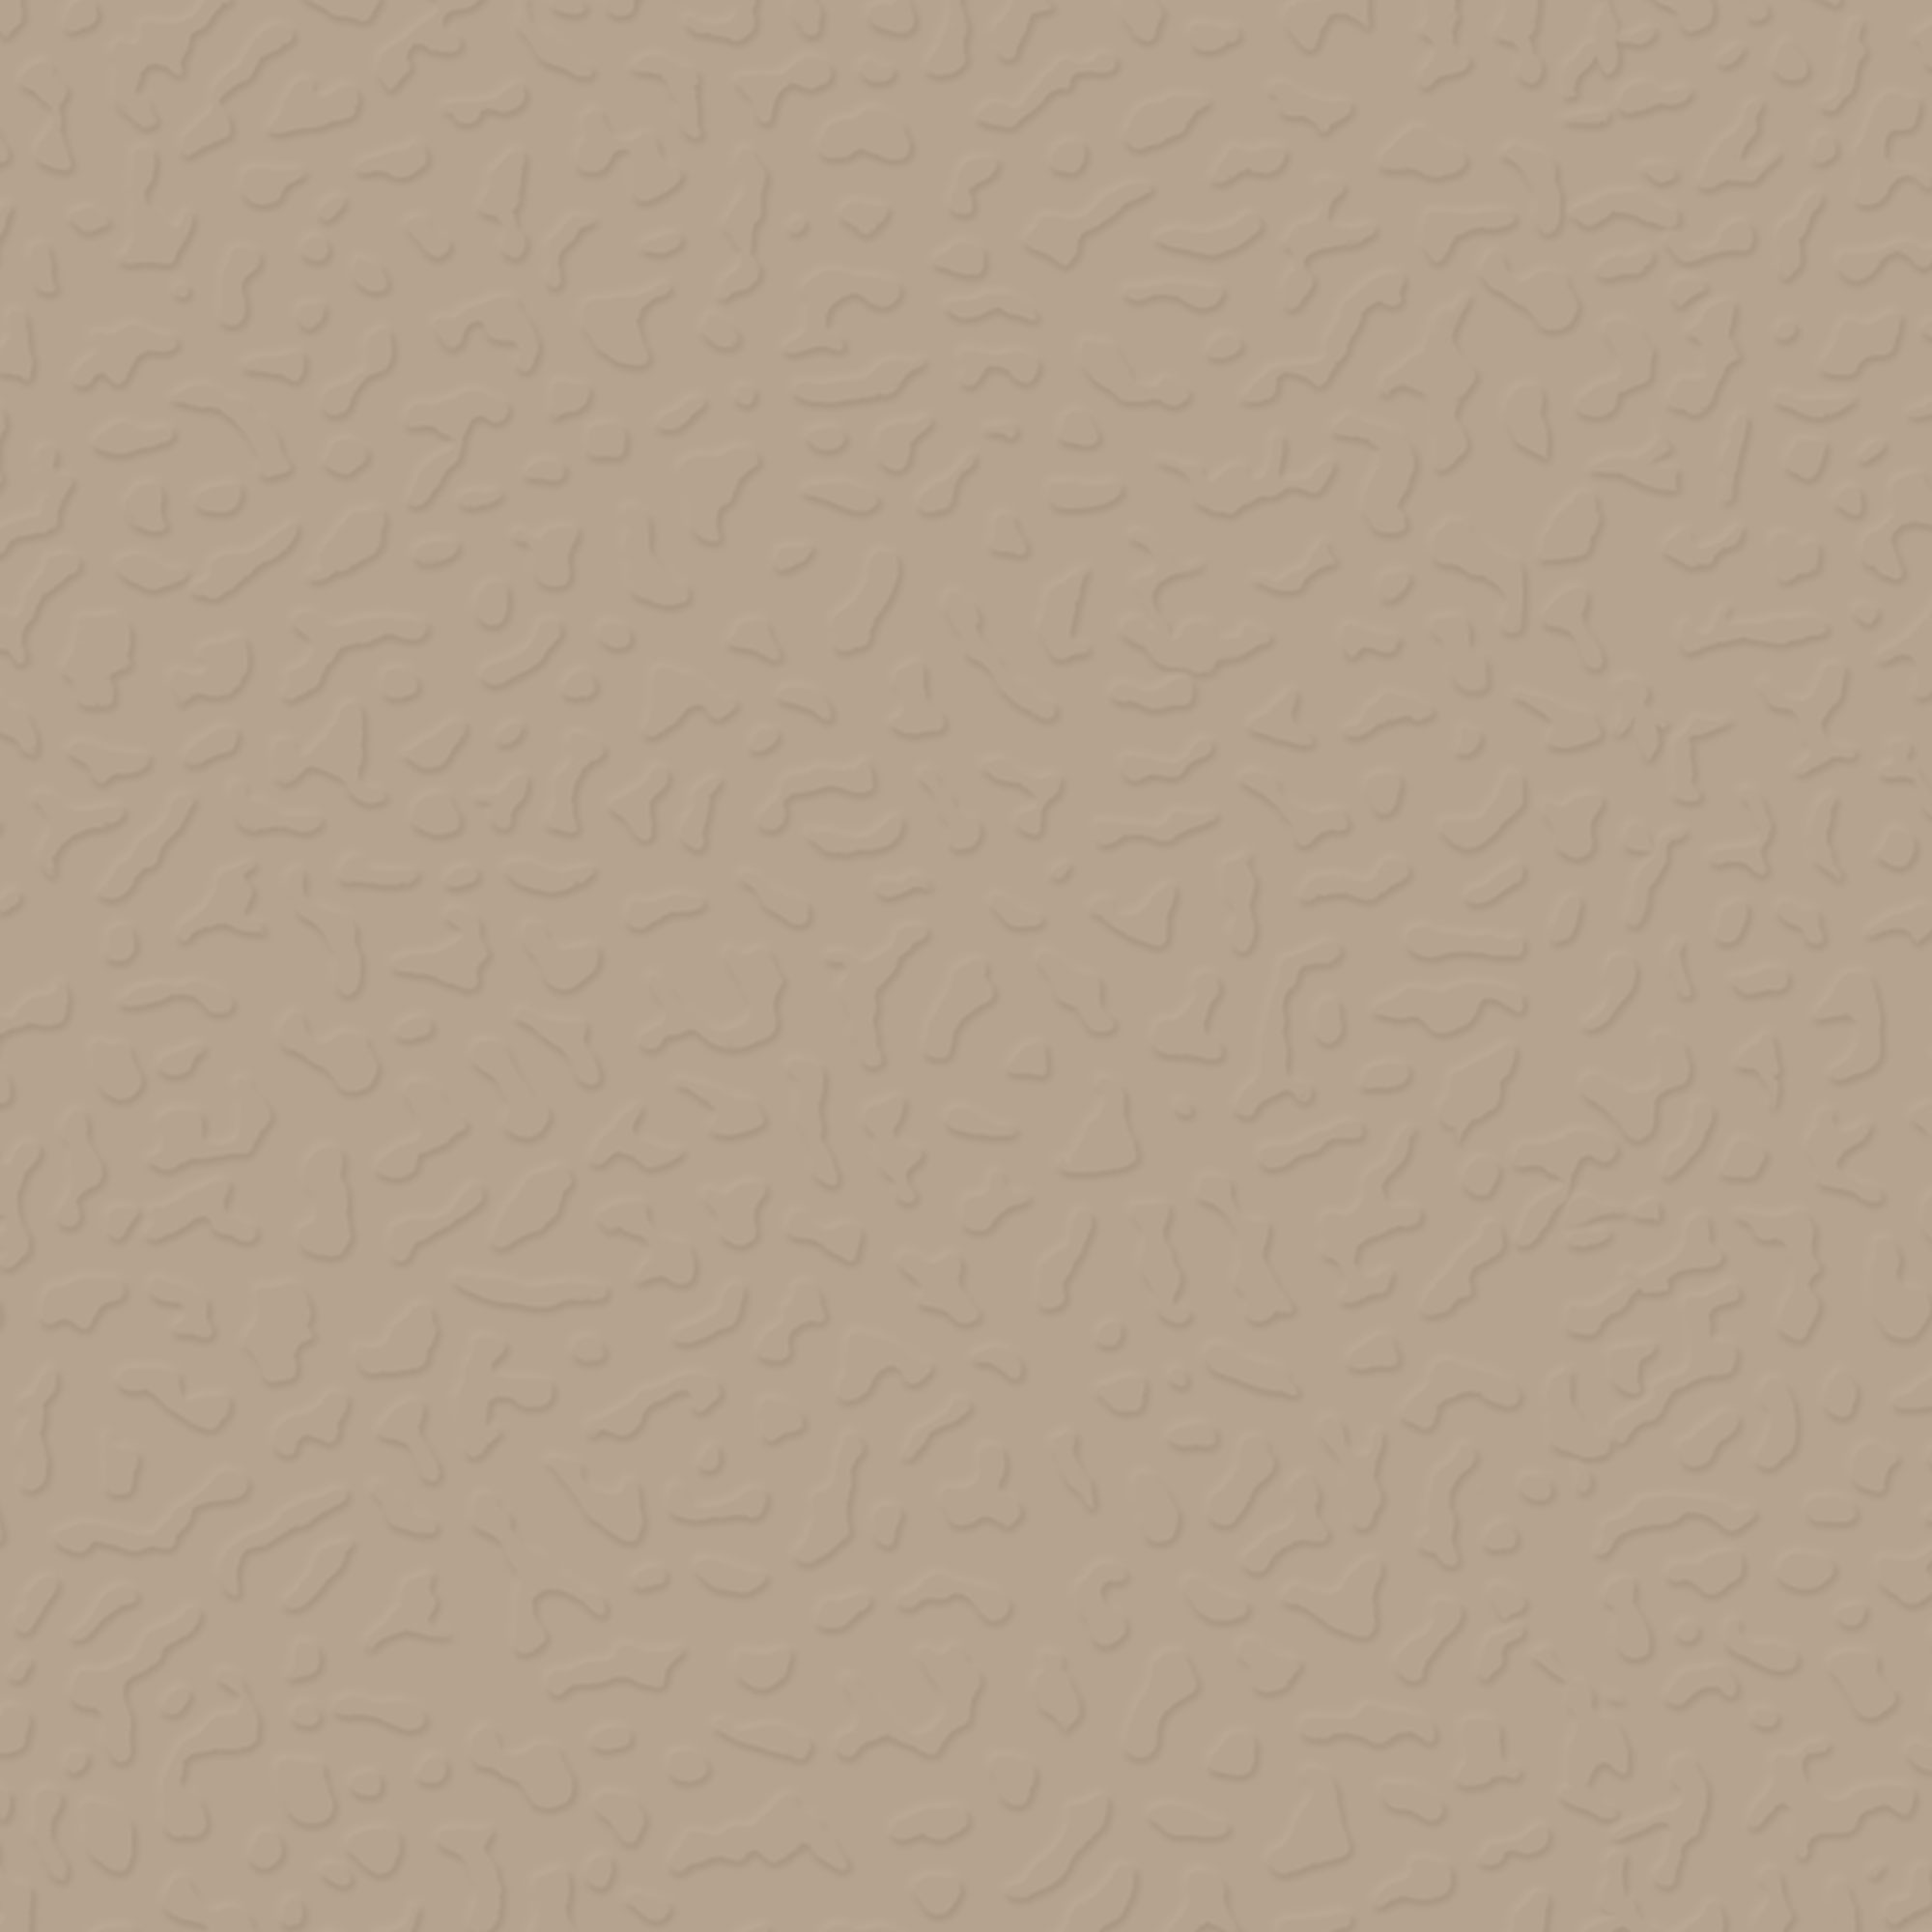 Roppe Rubber Tile 900 - Textured Design (993) Ivory Rubber Flooring